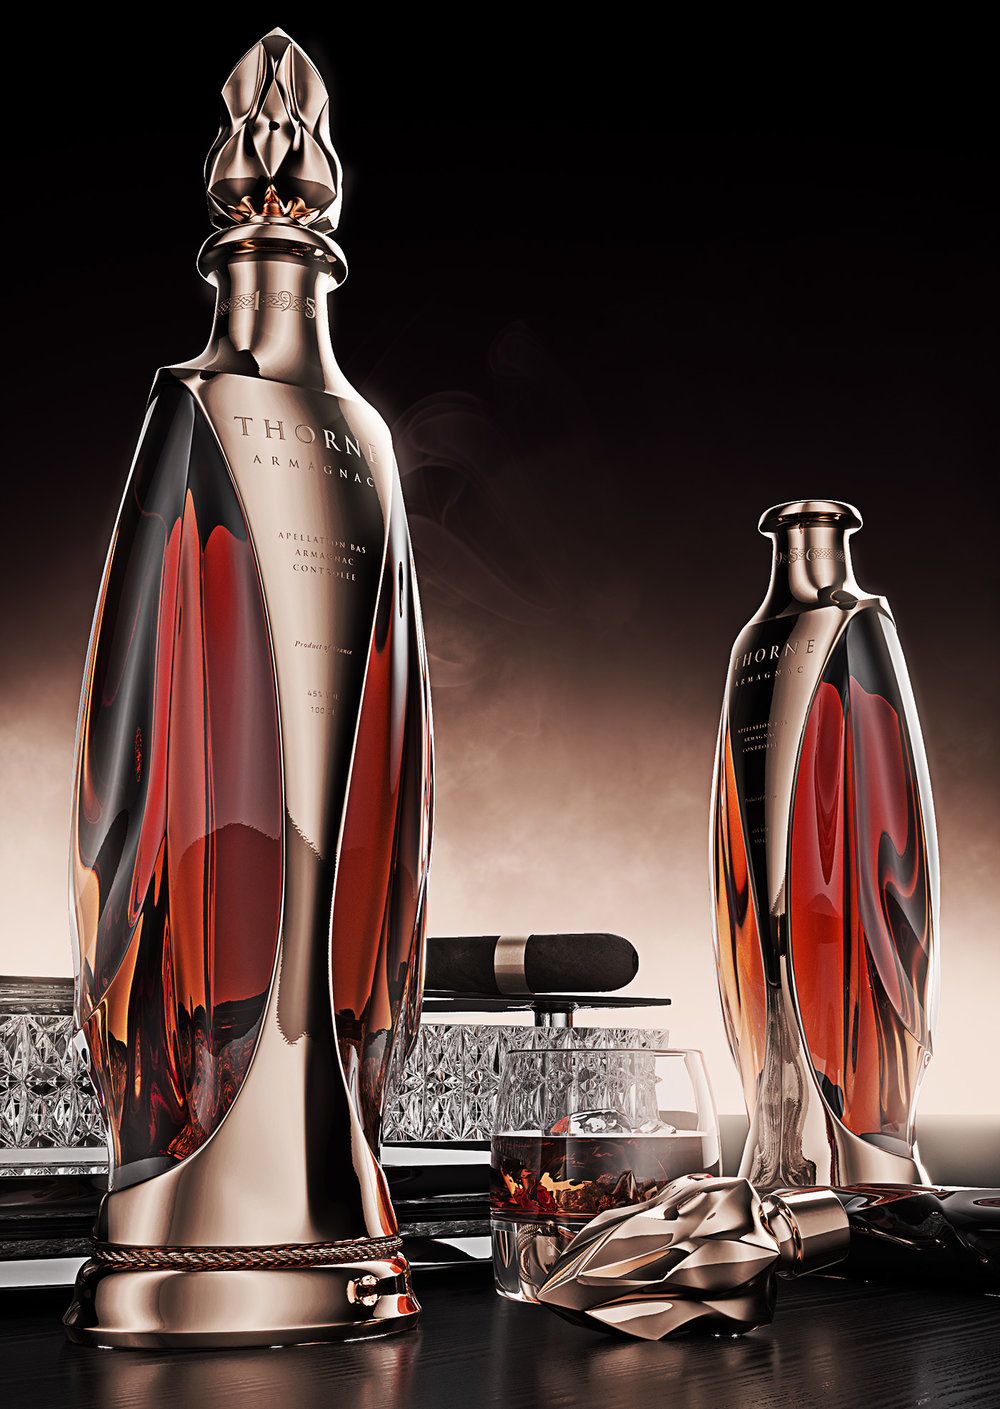 Thorne luxury armagnac bottle 6.jpg